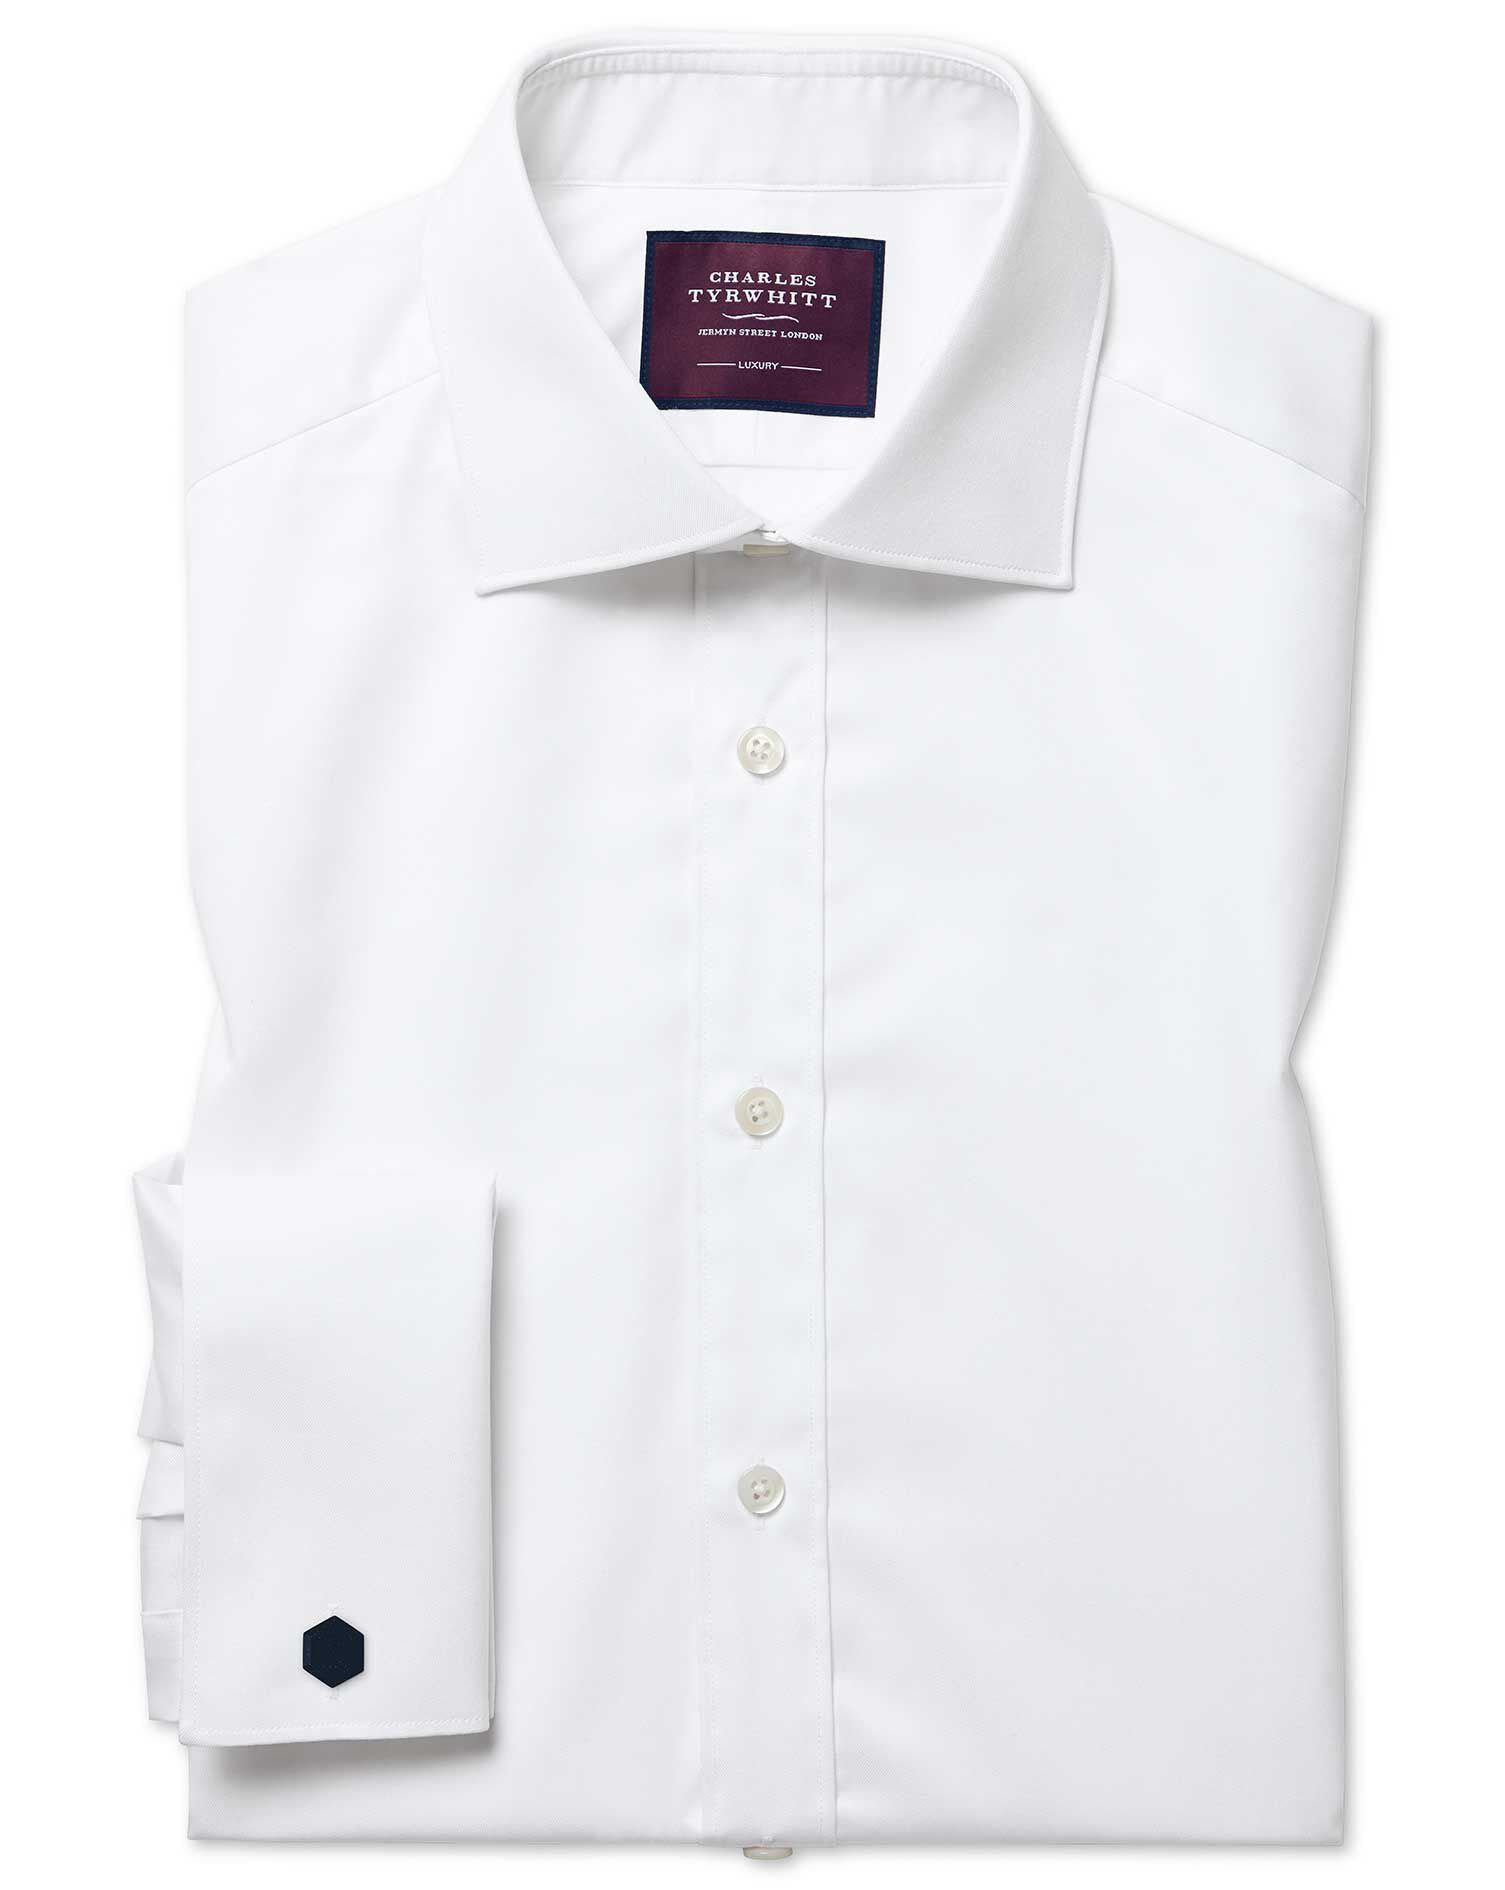 Slim Fit Semi-Cutaway Luxury Twill White Egyptian Cotton Formal Shirt Double Cuff Size 18/35 by Char